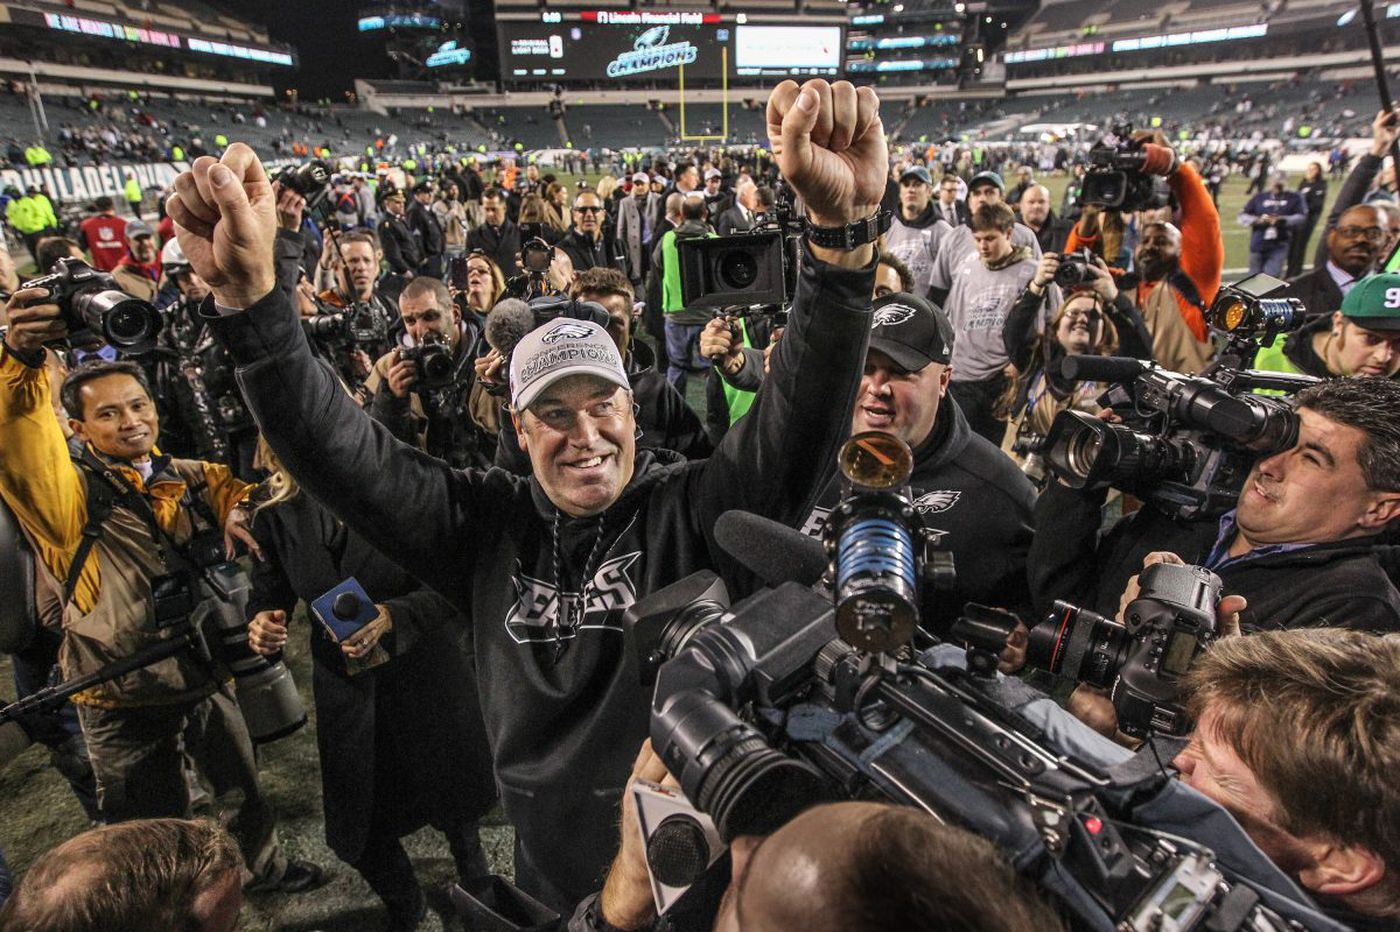 A Super Bowl tale: Philly and the Eagles are underdogs made for each other | Bob Ford